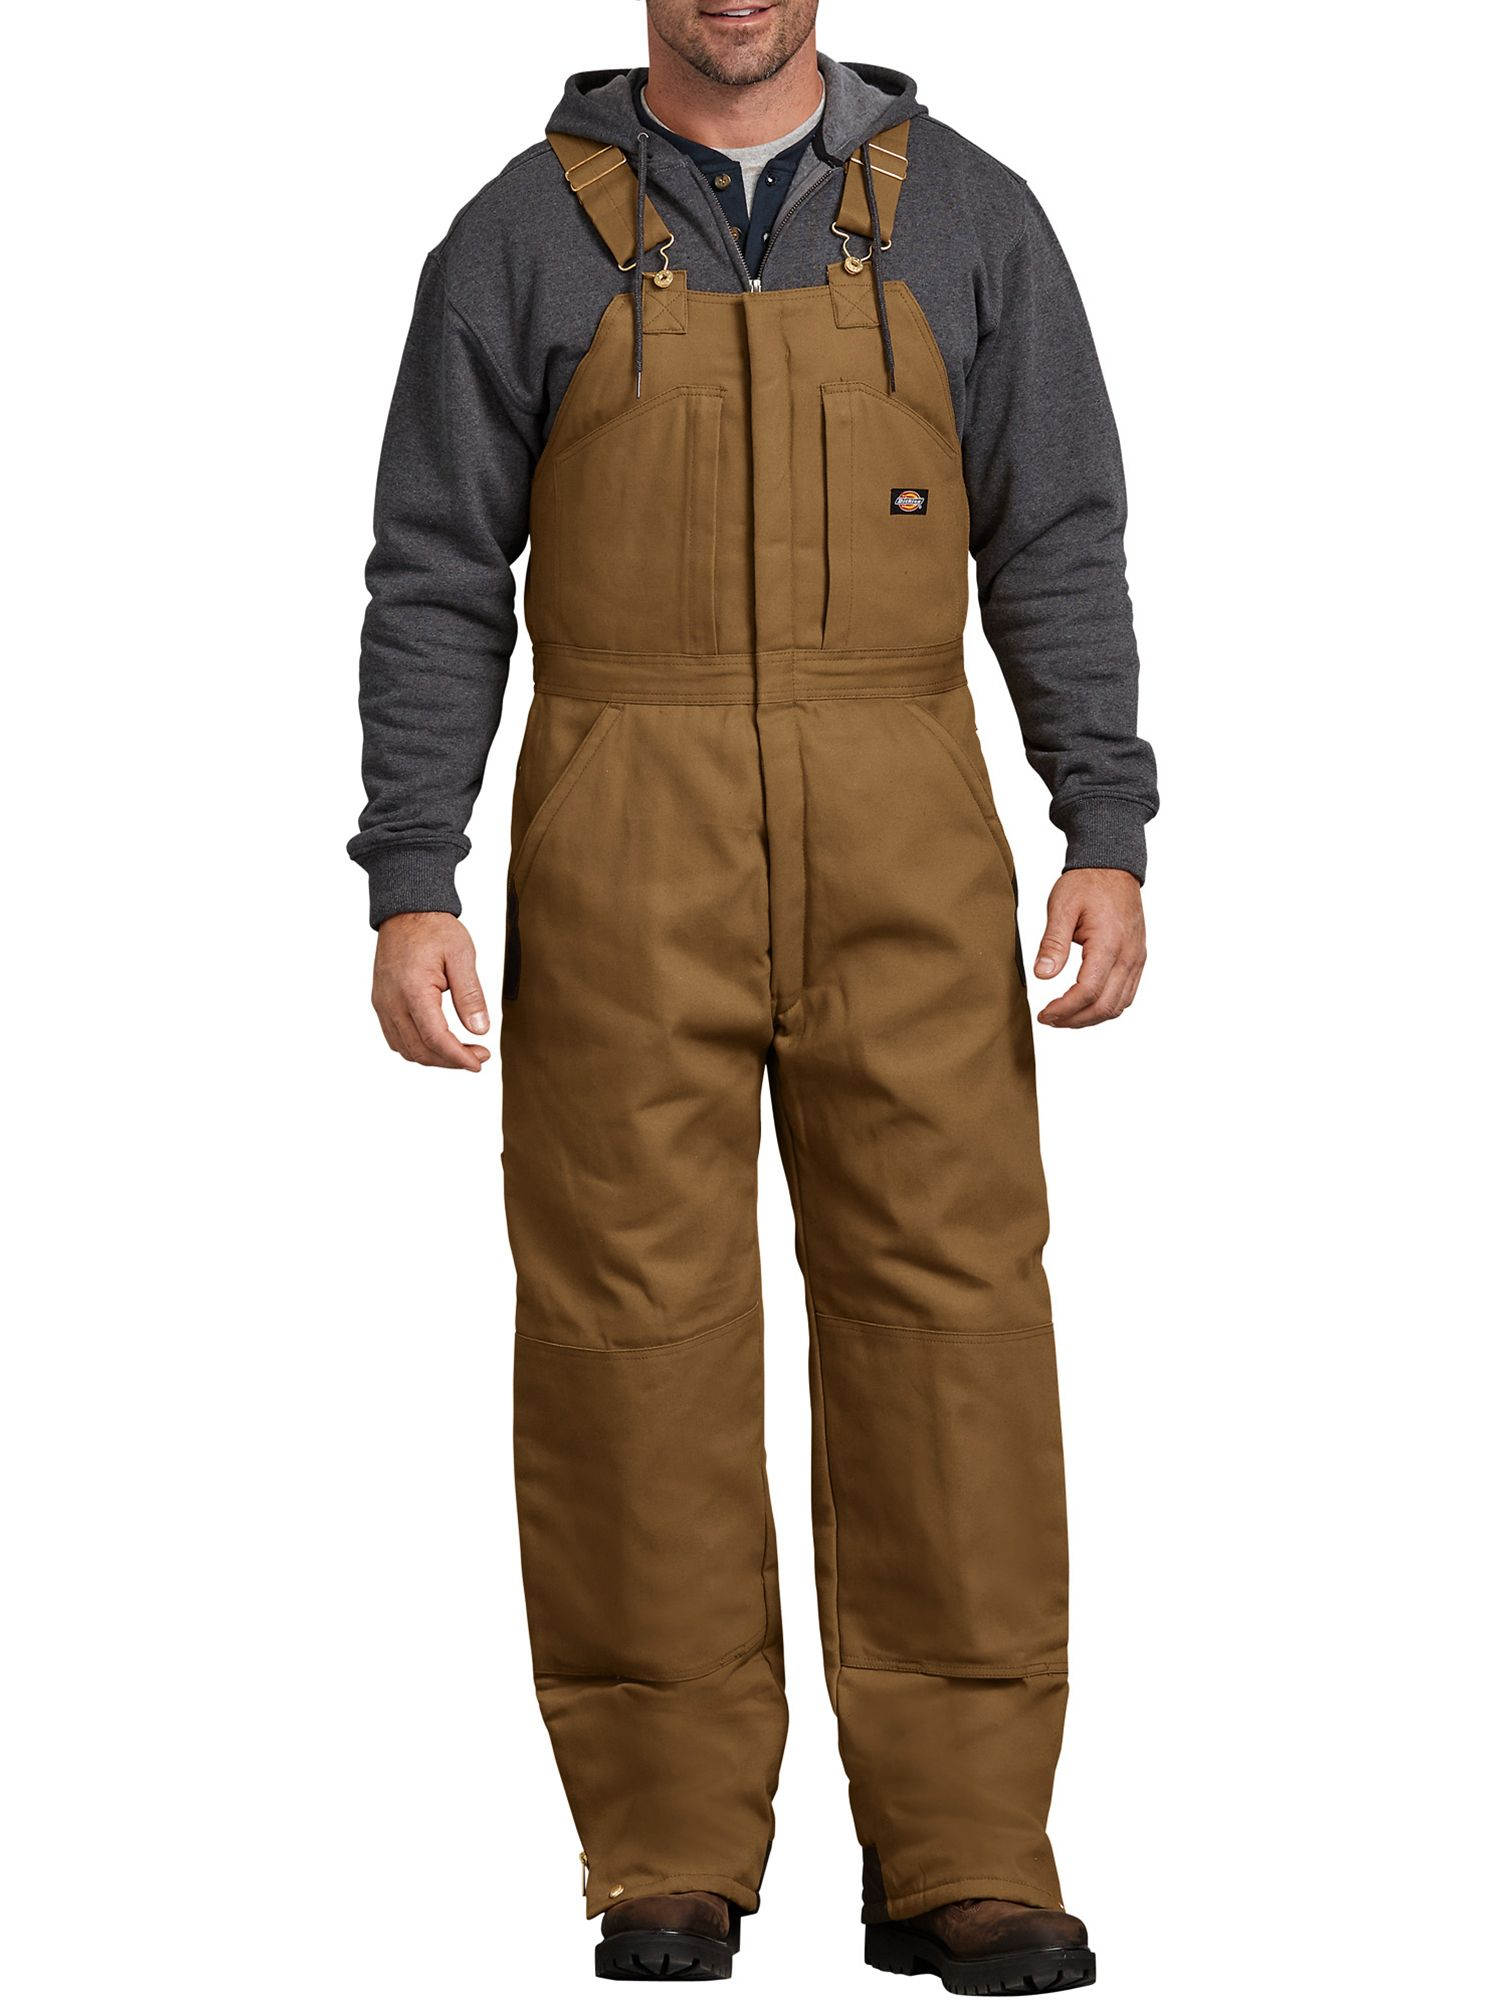 clothing with images insulated bib overalls overalls on cheap insulated coveralls for men id=54080